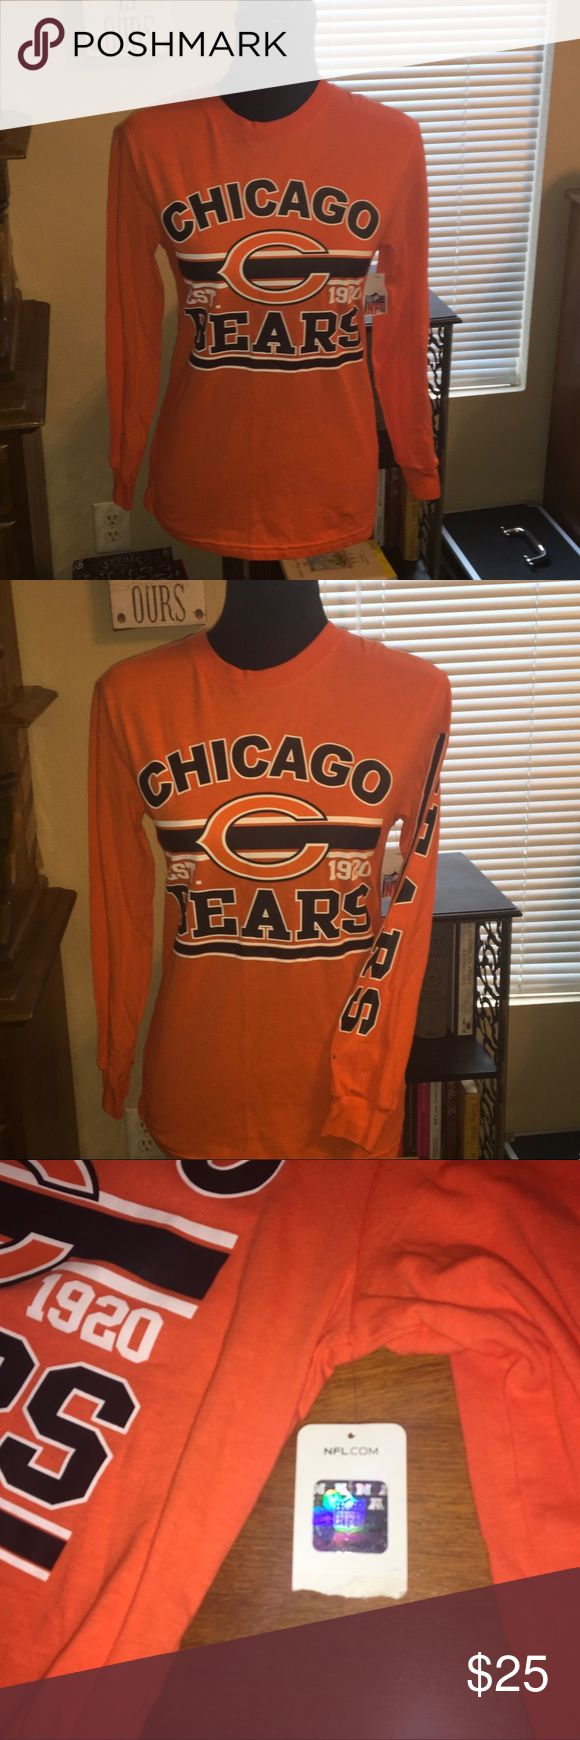 Boys official NFL Chicago Bears top MED Boys LS NWT Chicago Bears top, officially licensed.  #nfl #football nfl Shirts & Tops Tees - Long Sleeve